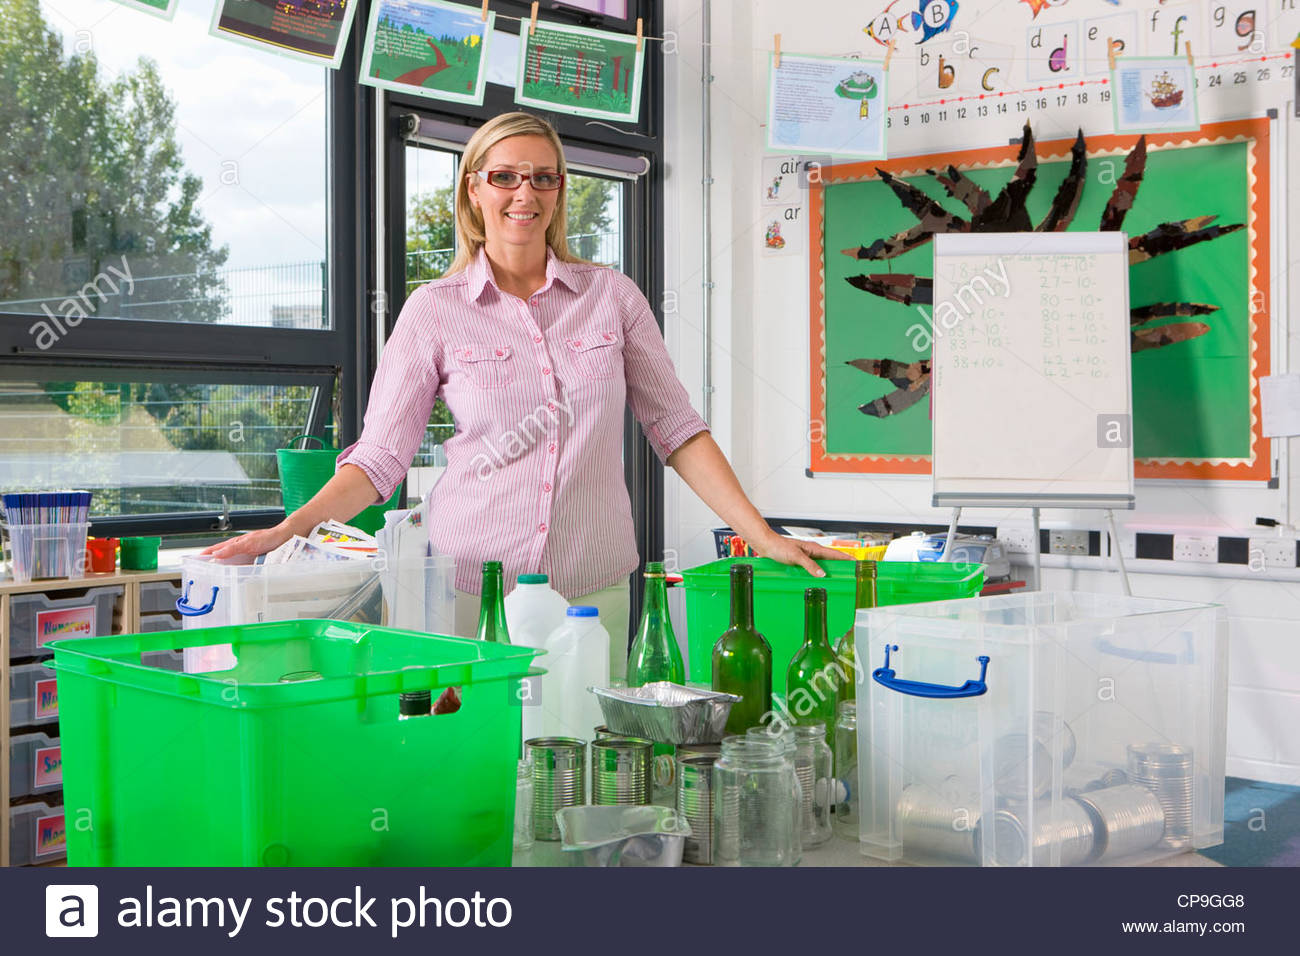 Smiling teacher standing with recyclables and bins in classroom - Stock Image